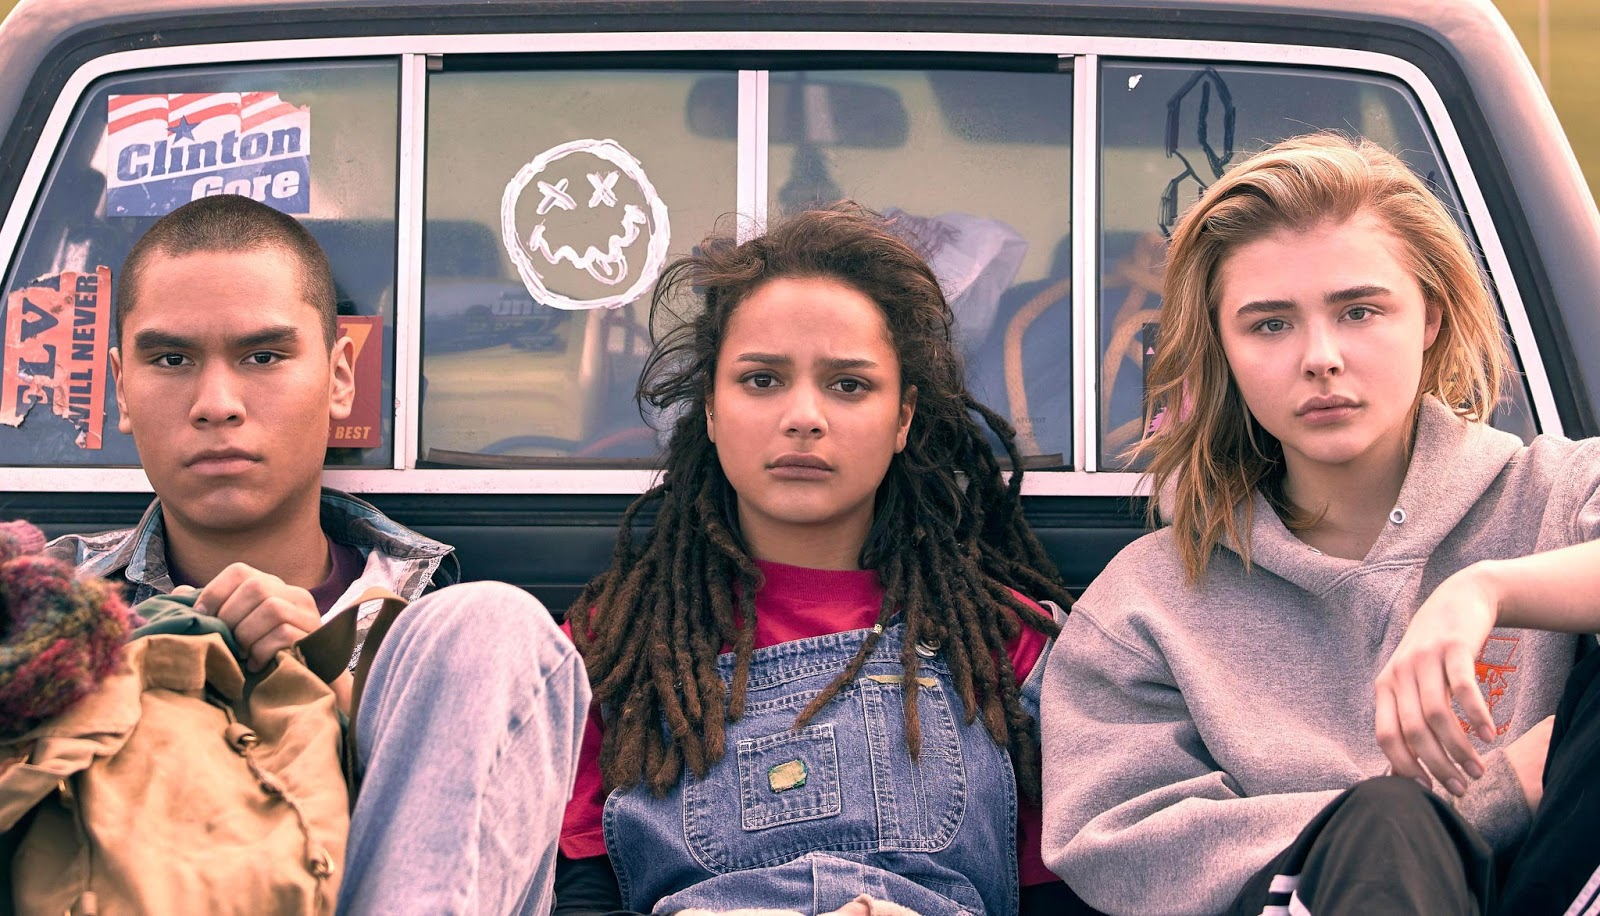 MOVIES: The Miseducation of Cameron Post - Review [Sundance 2018]